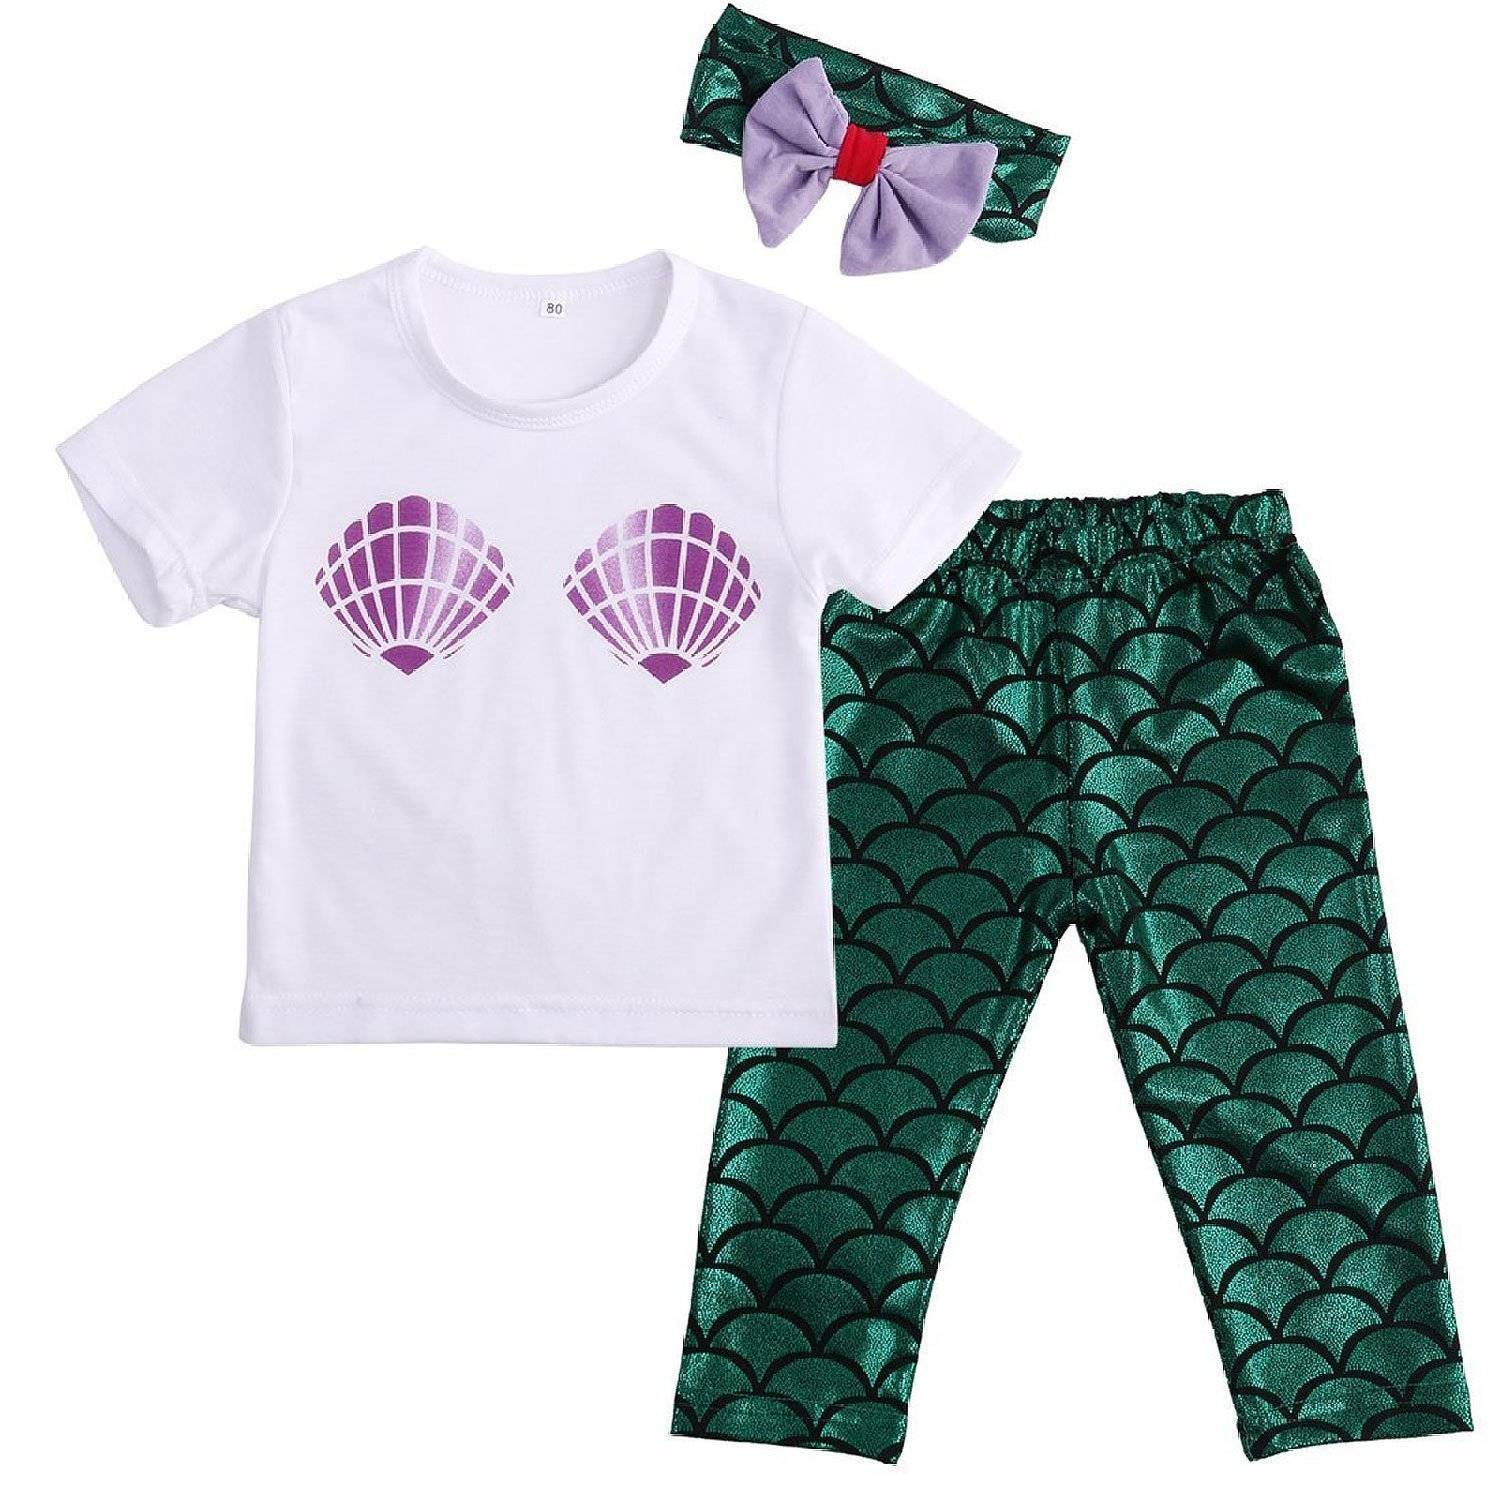 Baby Girls Cute Shell T-shirt + Mermaid Pants Outfit with Headband WANG76040